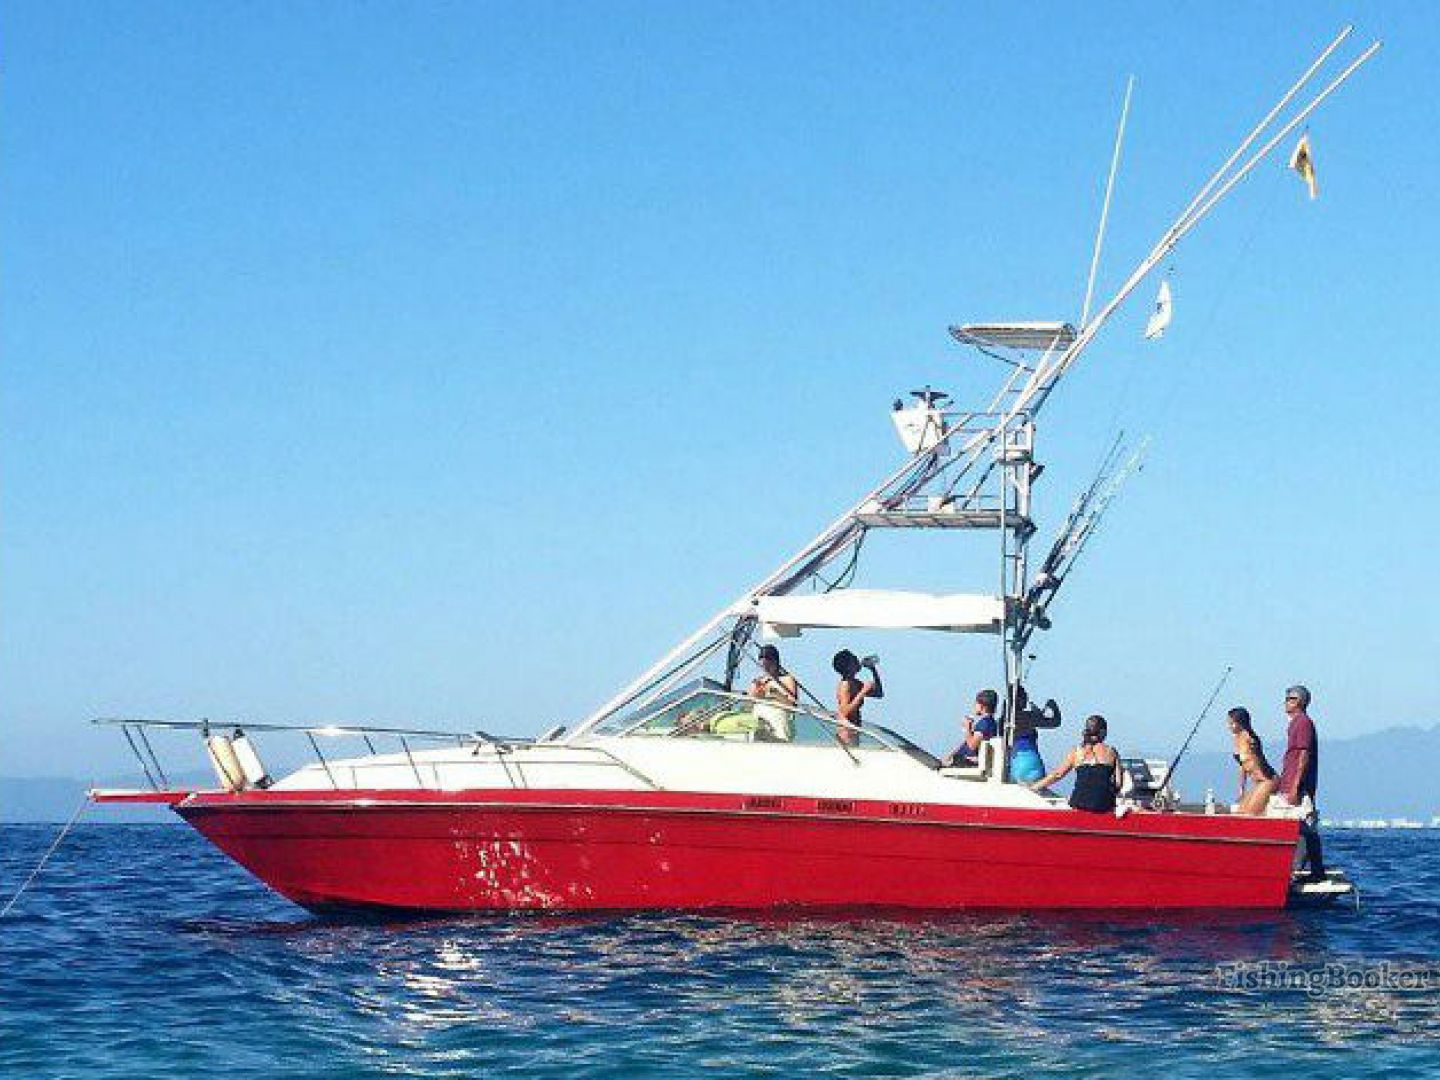 Nuevo vallarta sportfishing 34 ft puerto vallarta for Nuevo vallarta fishing